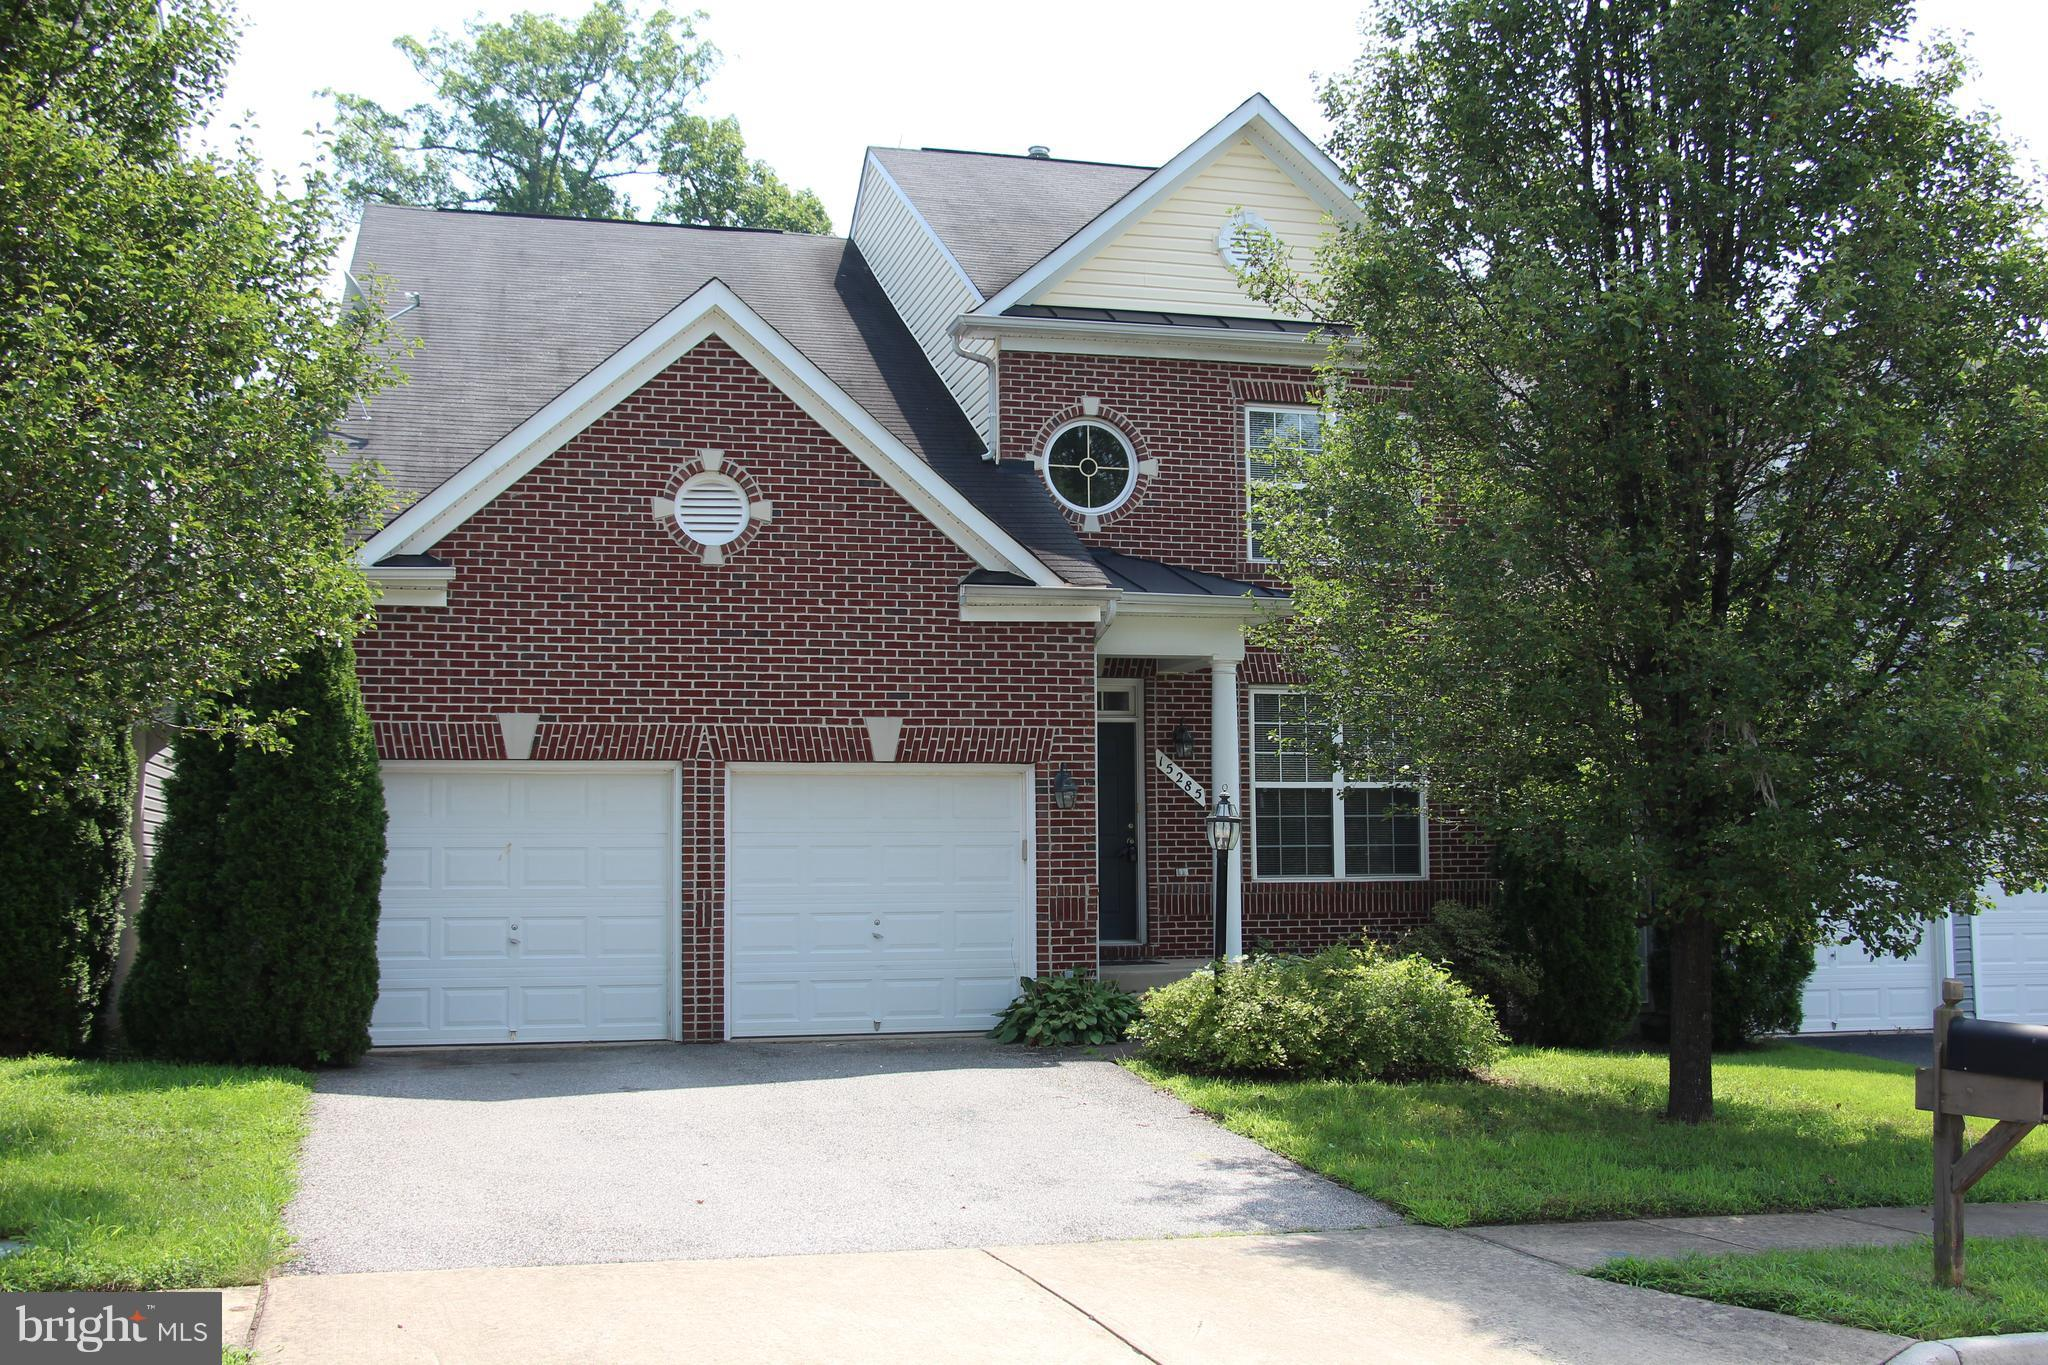 LARGE 4,041sf Charming Colonial! Super Location in Woodbridge just Off I-95 and Rt 1. Oversized Master Bedroom,Dual WIC's. Walk-out from Kitchen to  Deck &  rear yard that Backs to TREES! Priced RIGHT! Check the Comps! Master Suite just painted. Needs some paint and  carpet to be a 10! ***Short Sale with Experienced CDPE Agent & Top Notch Attorney! Paperwork Complete! Just Need Offer for Bank.****